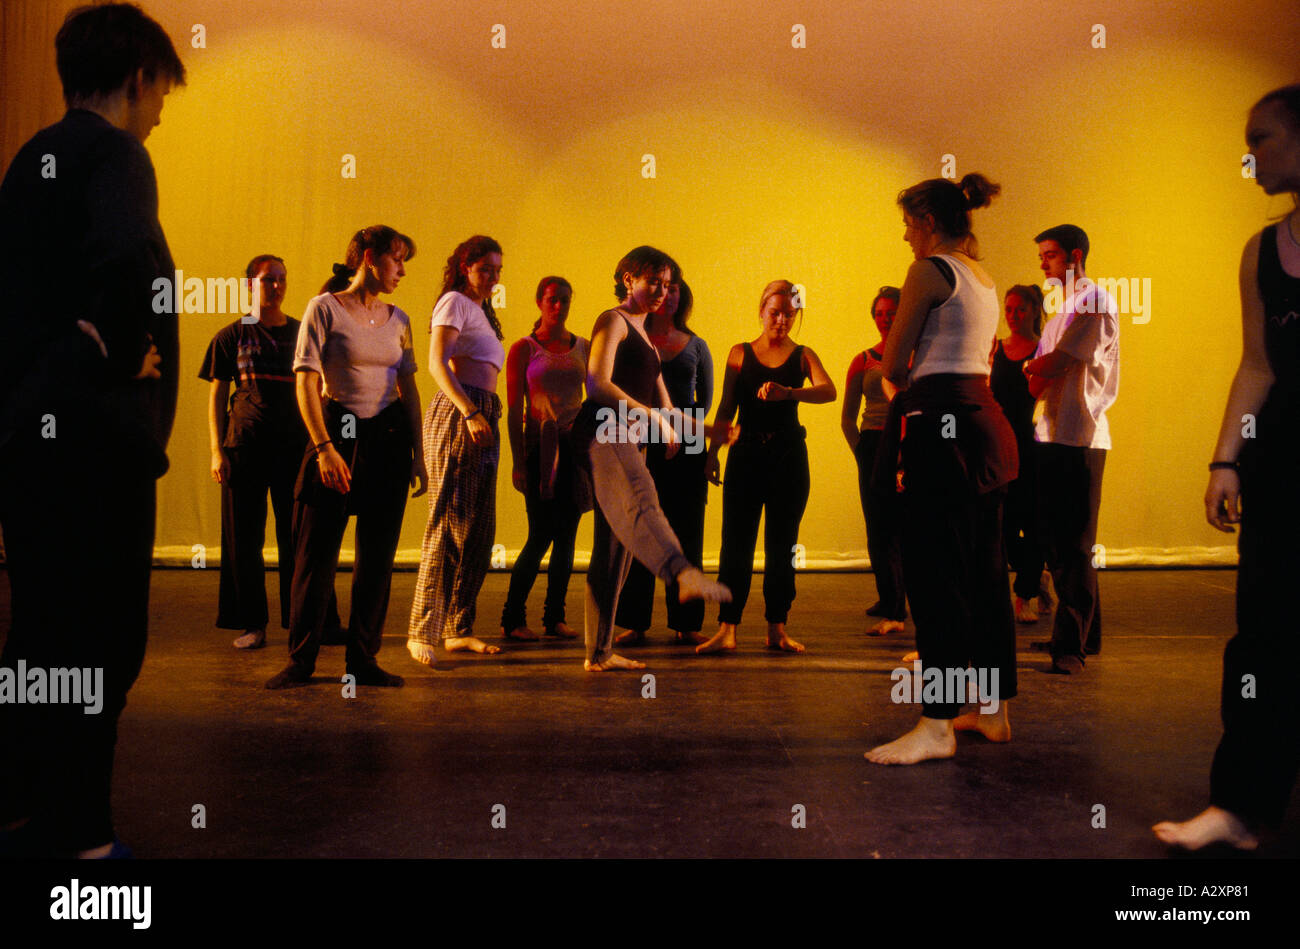 Dance students watch as one girl trys out a pointing leg movement during rehearsal at Liverpool Institute Of Performing Arts - Stock Image